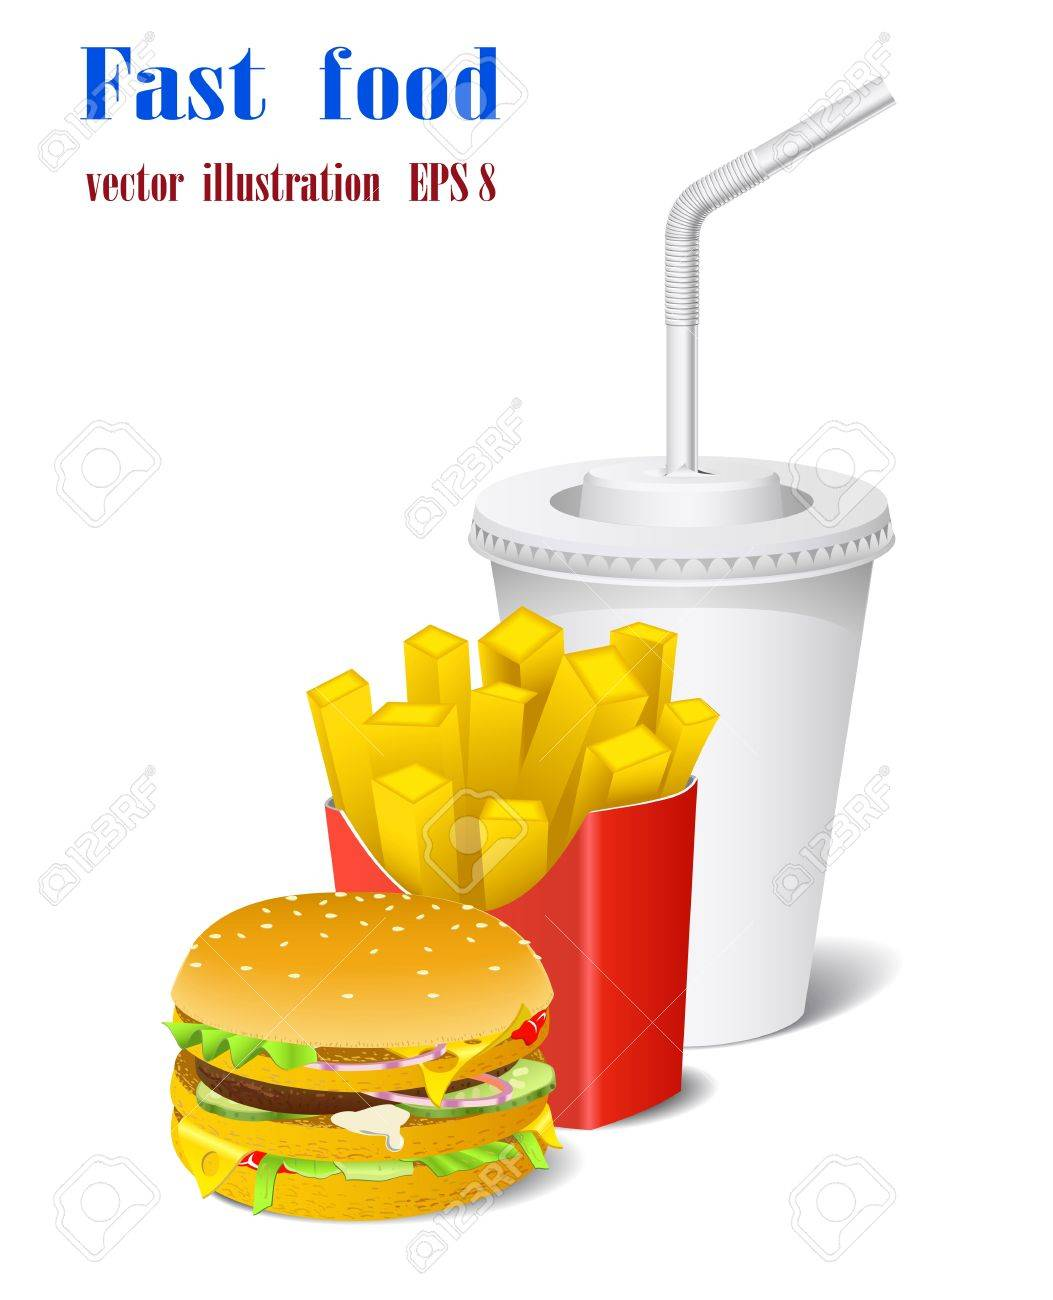 Sandwich, potato and a cup are shown in the picture Stock Vector - 9390103